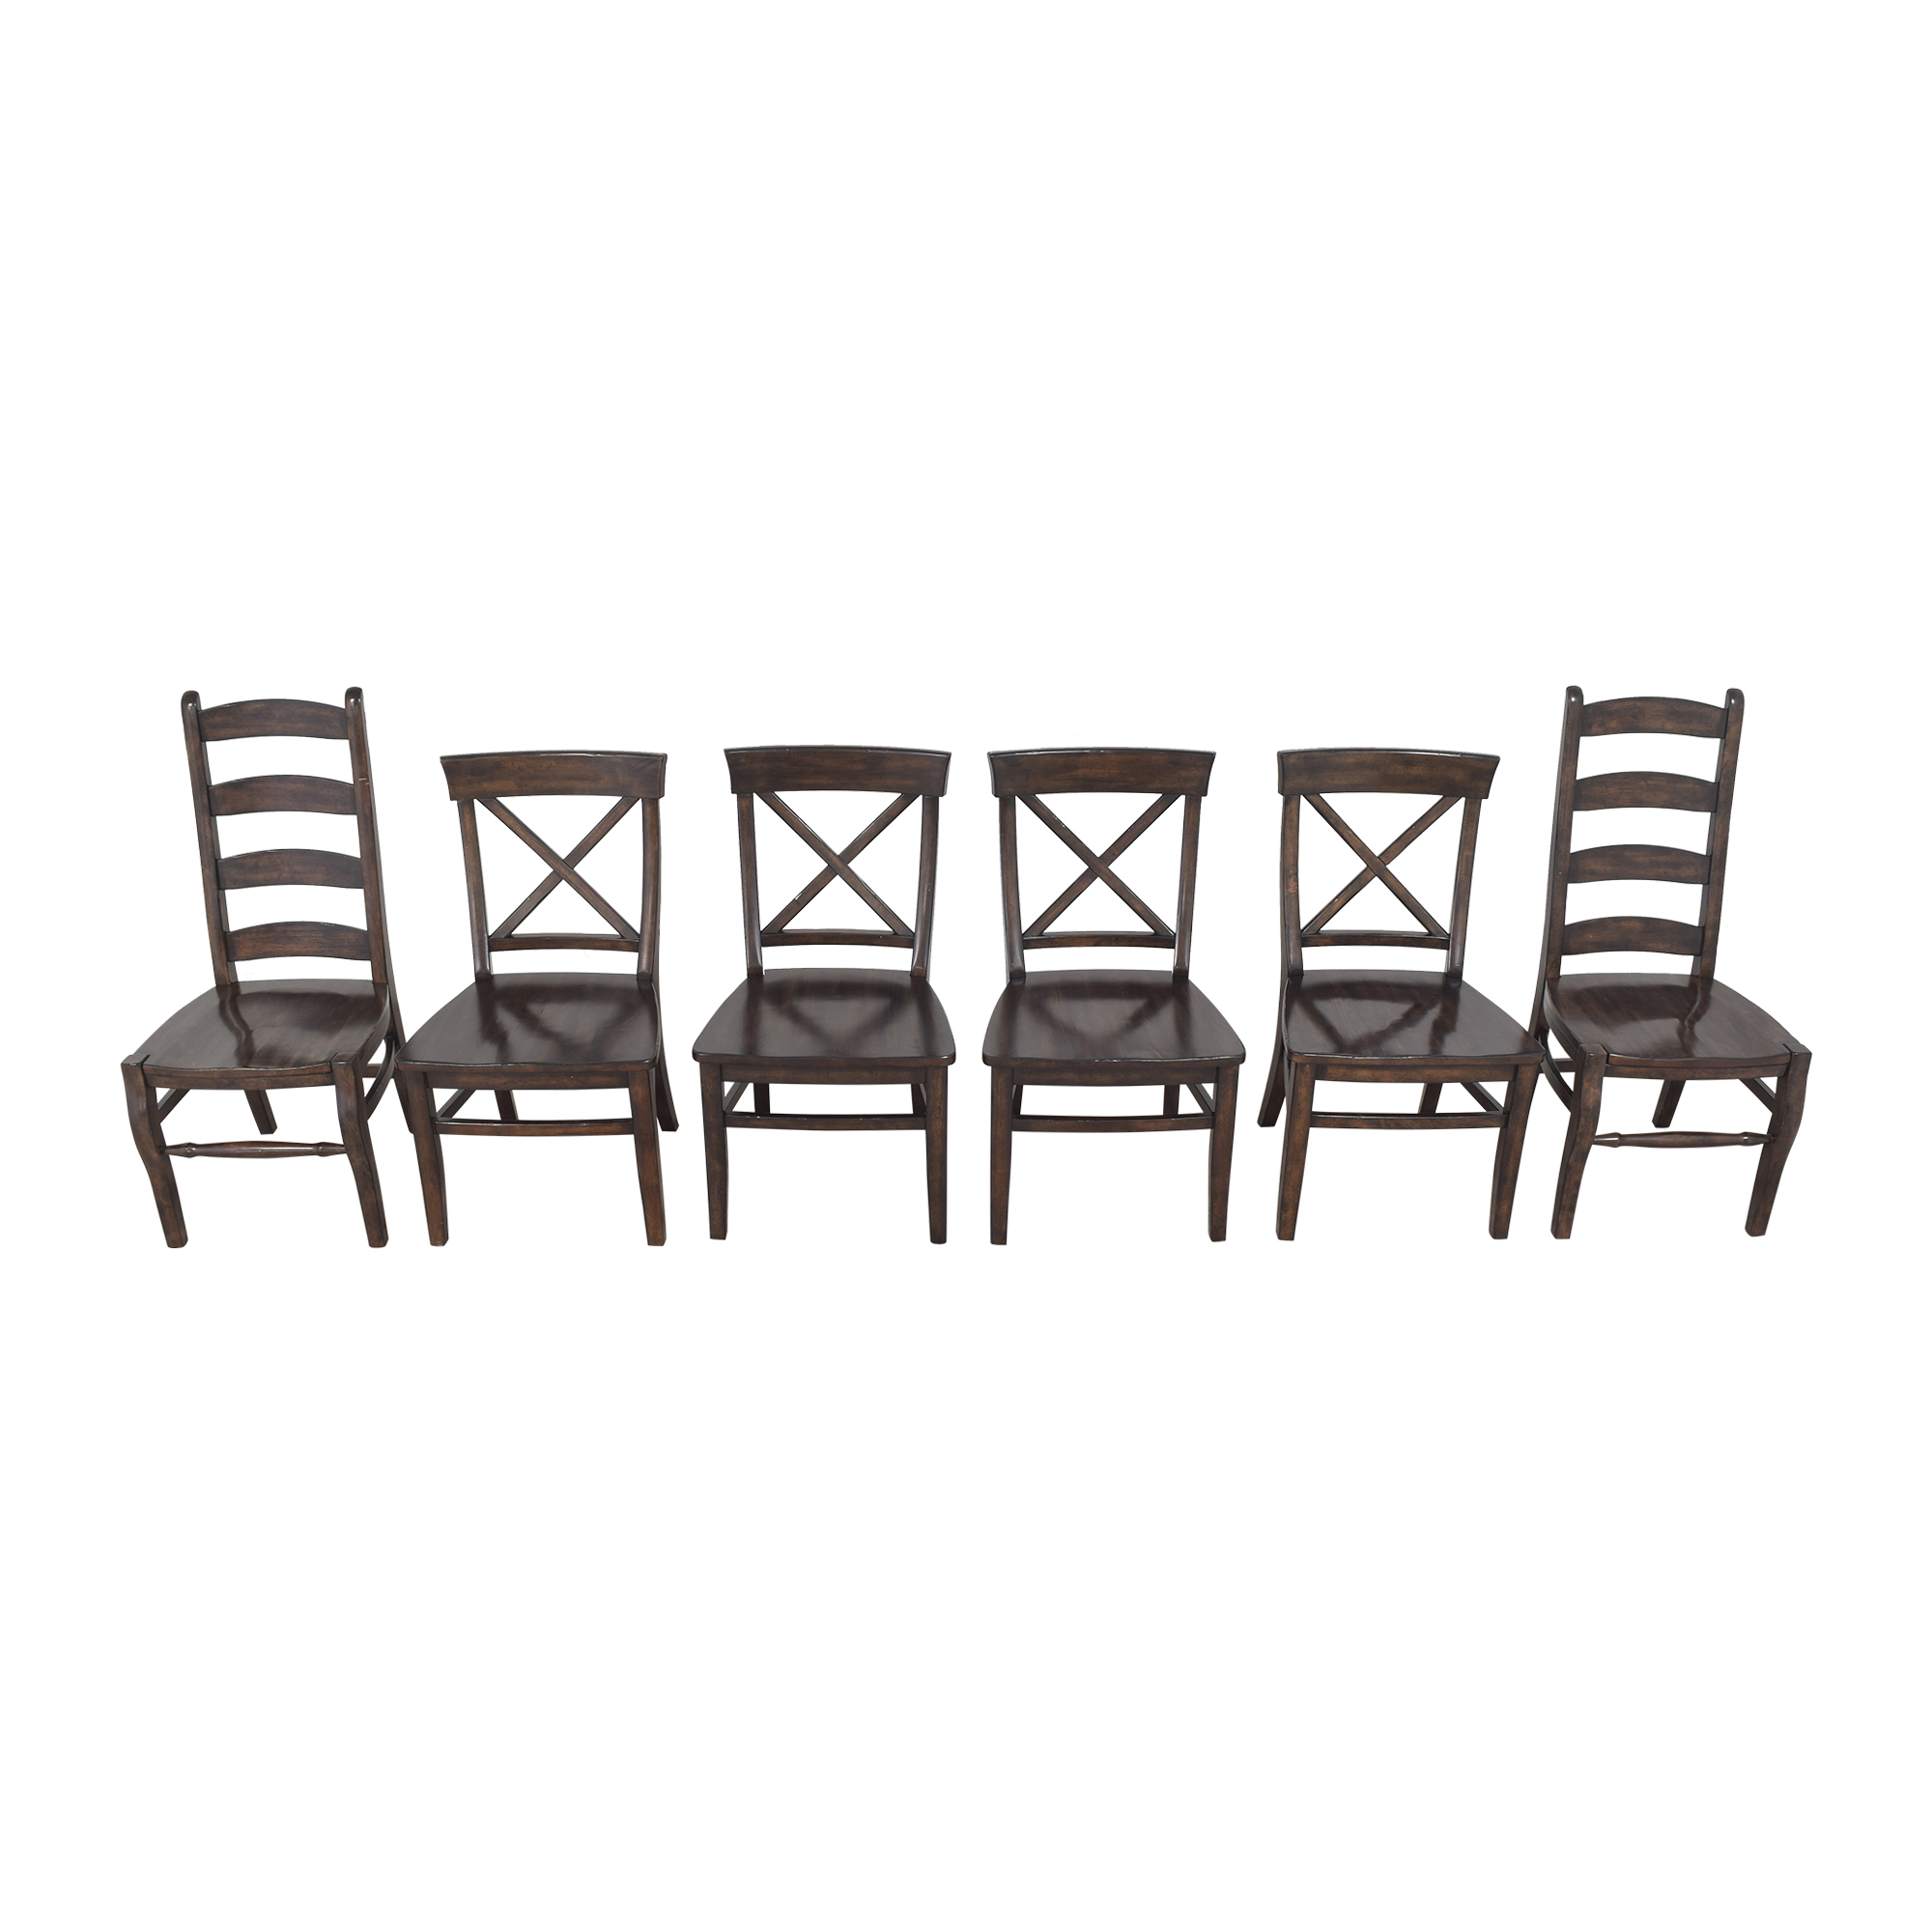 Pottery Barn Aaron and Wynn Ladderback Dining Chairs / Dining Chairs